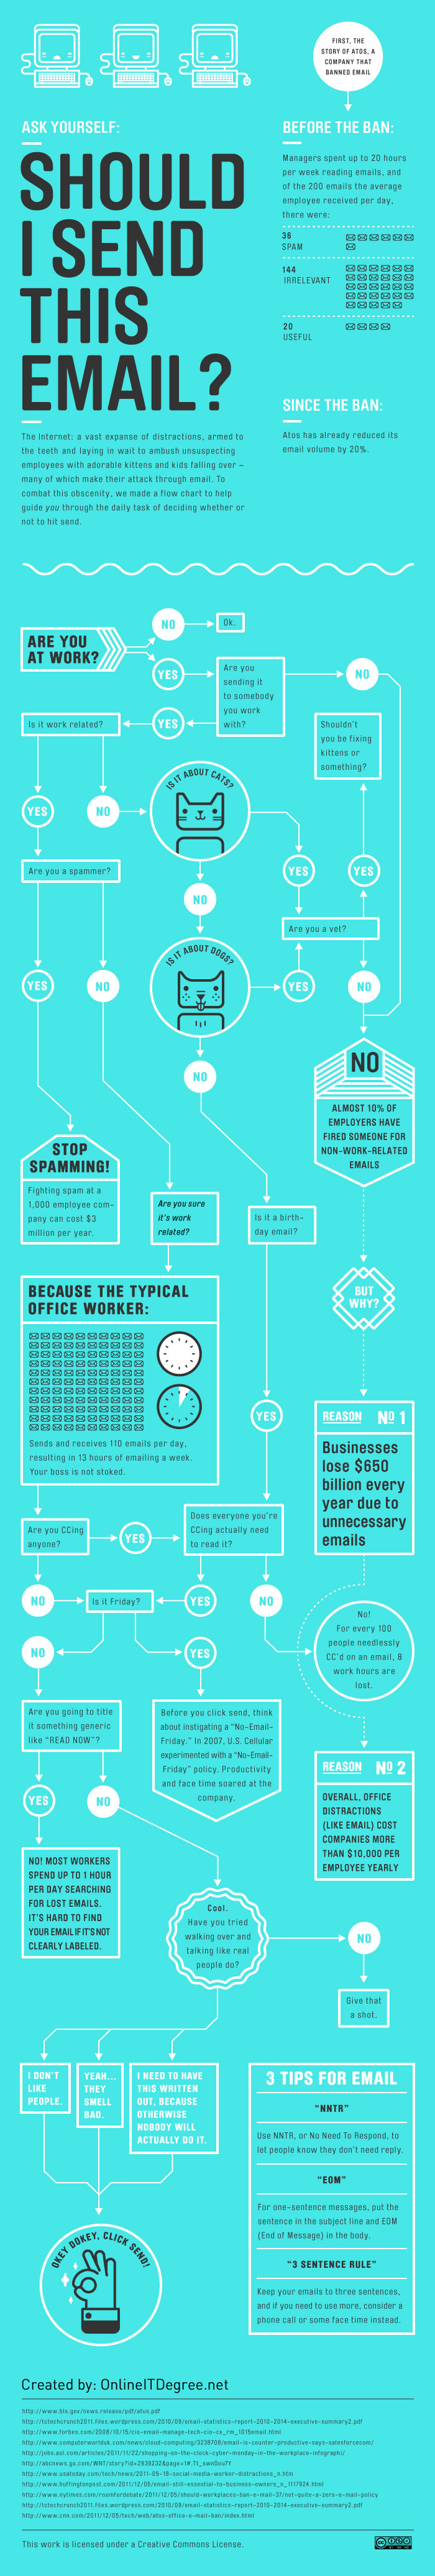 Email handling infographic